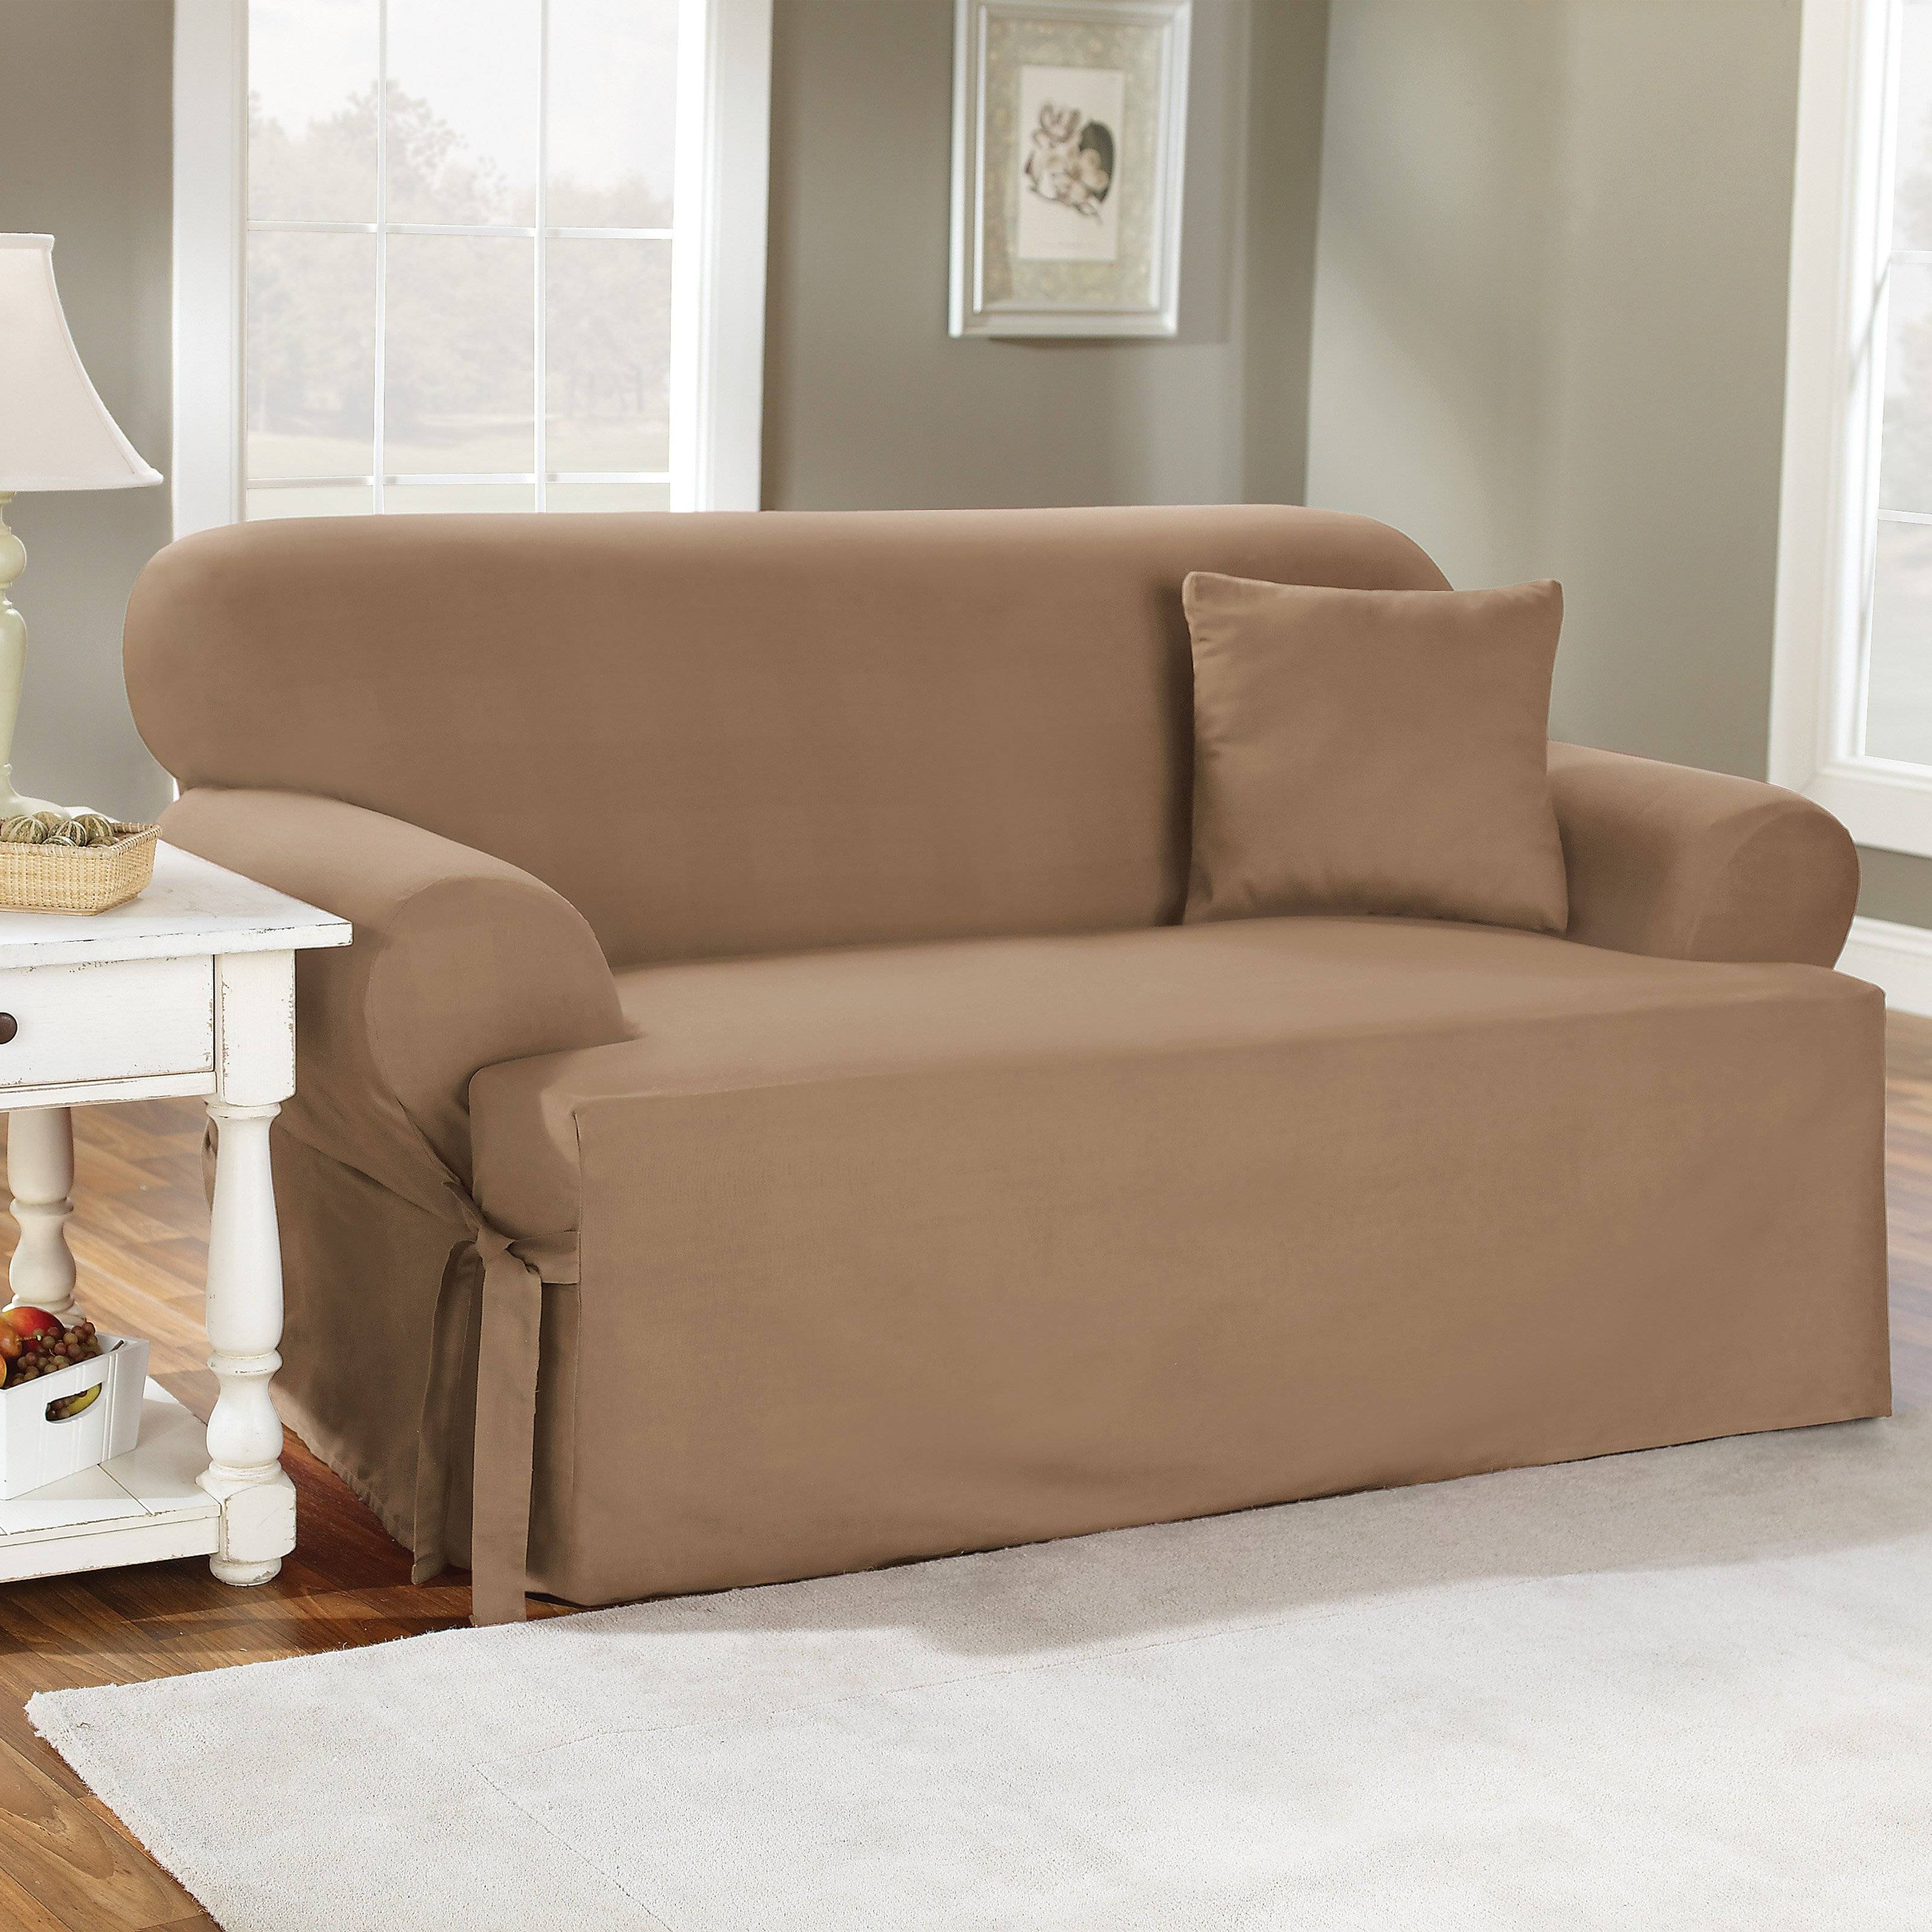 Decor: Fascinating Sofa Covers Walmart For Alluring Furniture Pertaining To Sofa And Chair Covers (View 4 of 30)